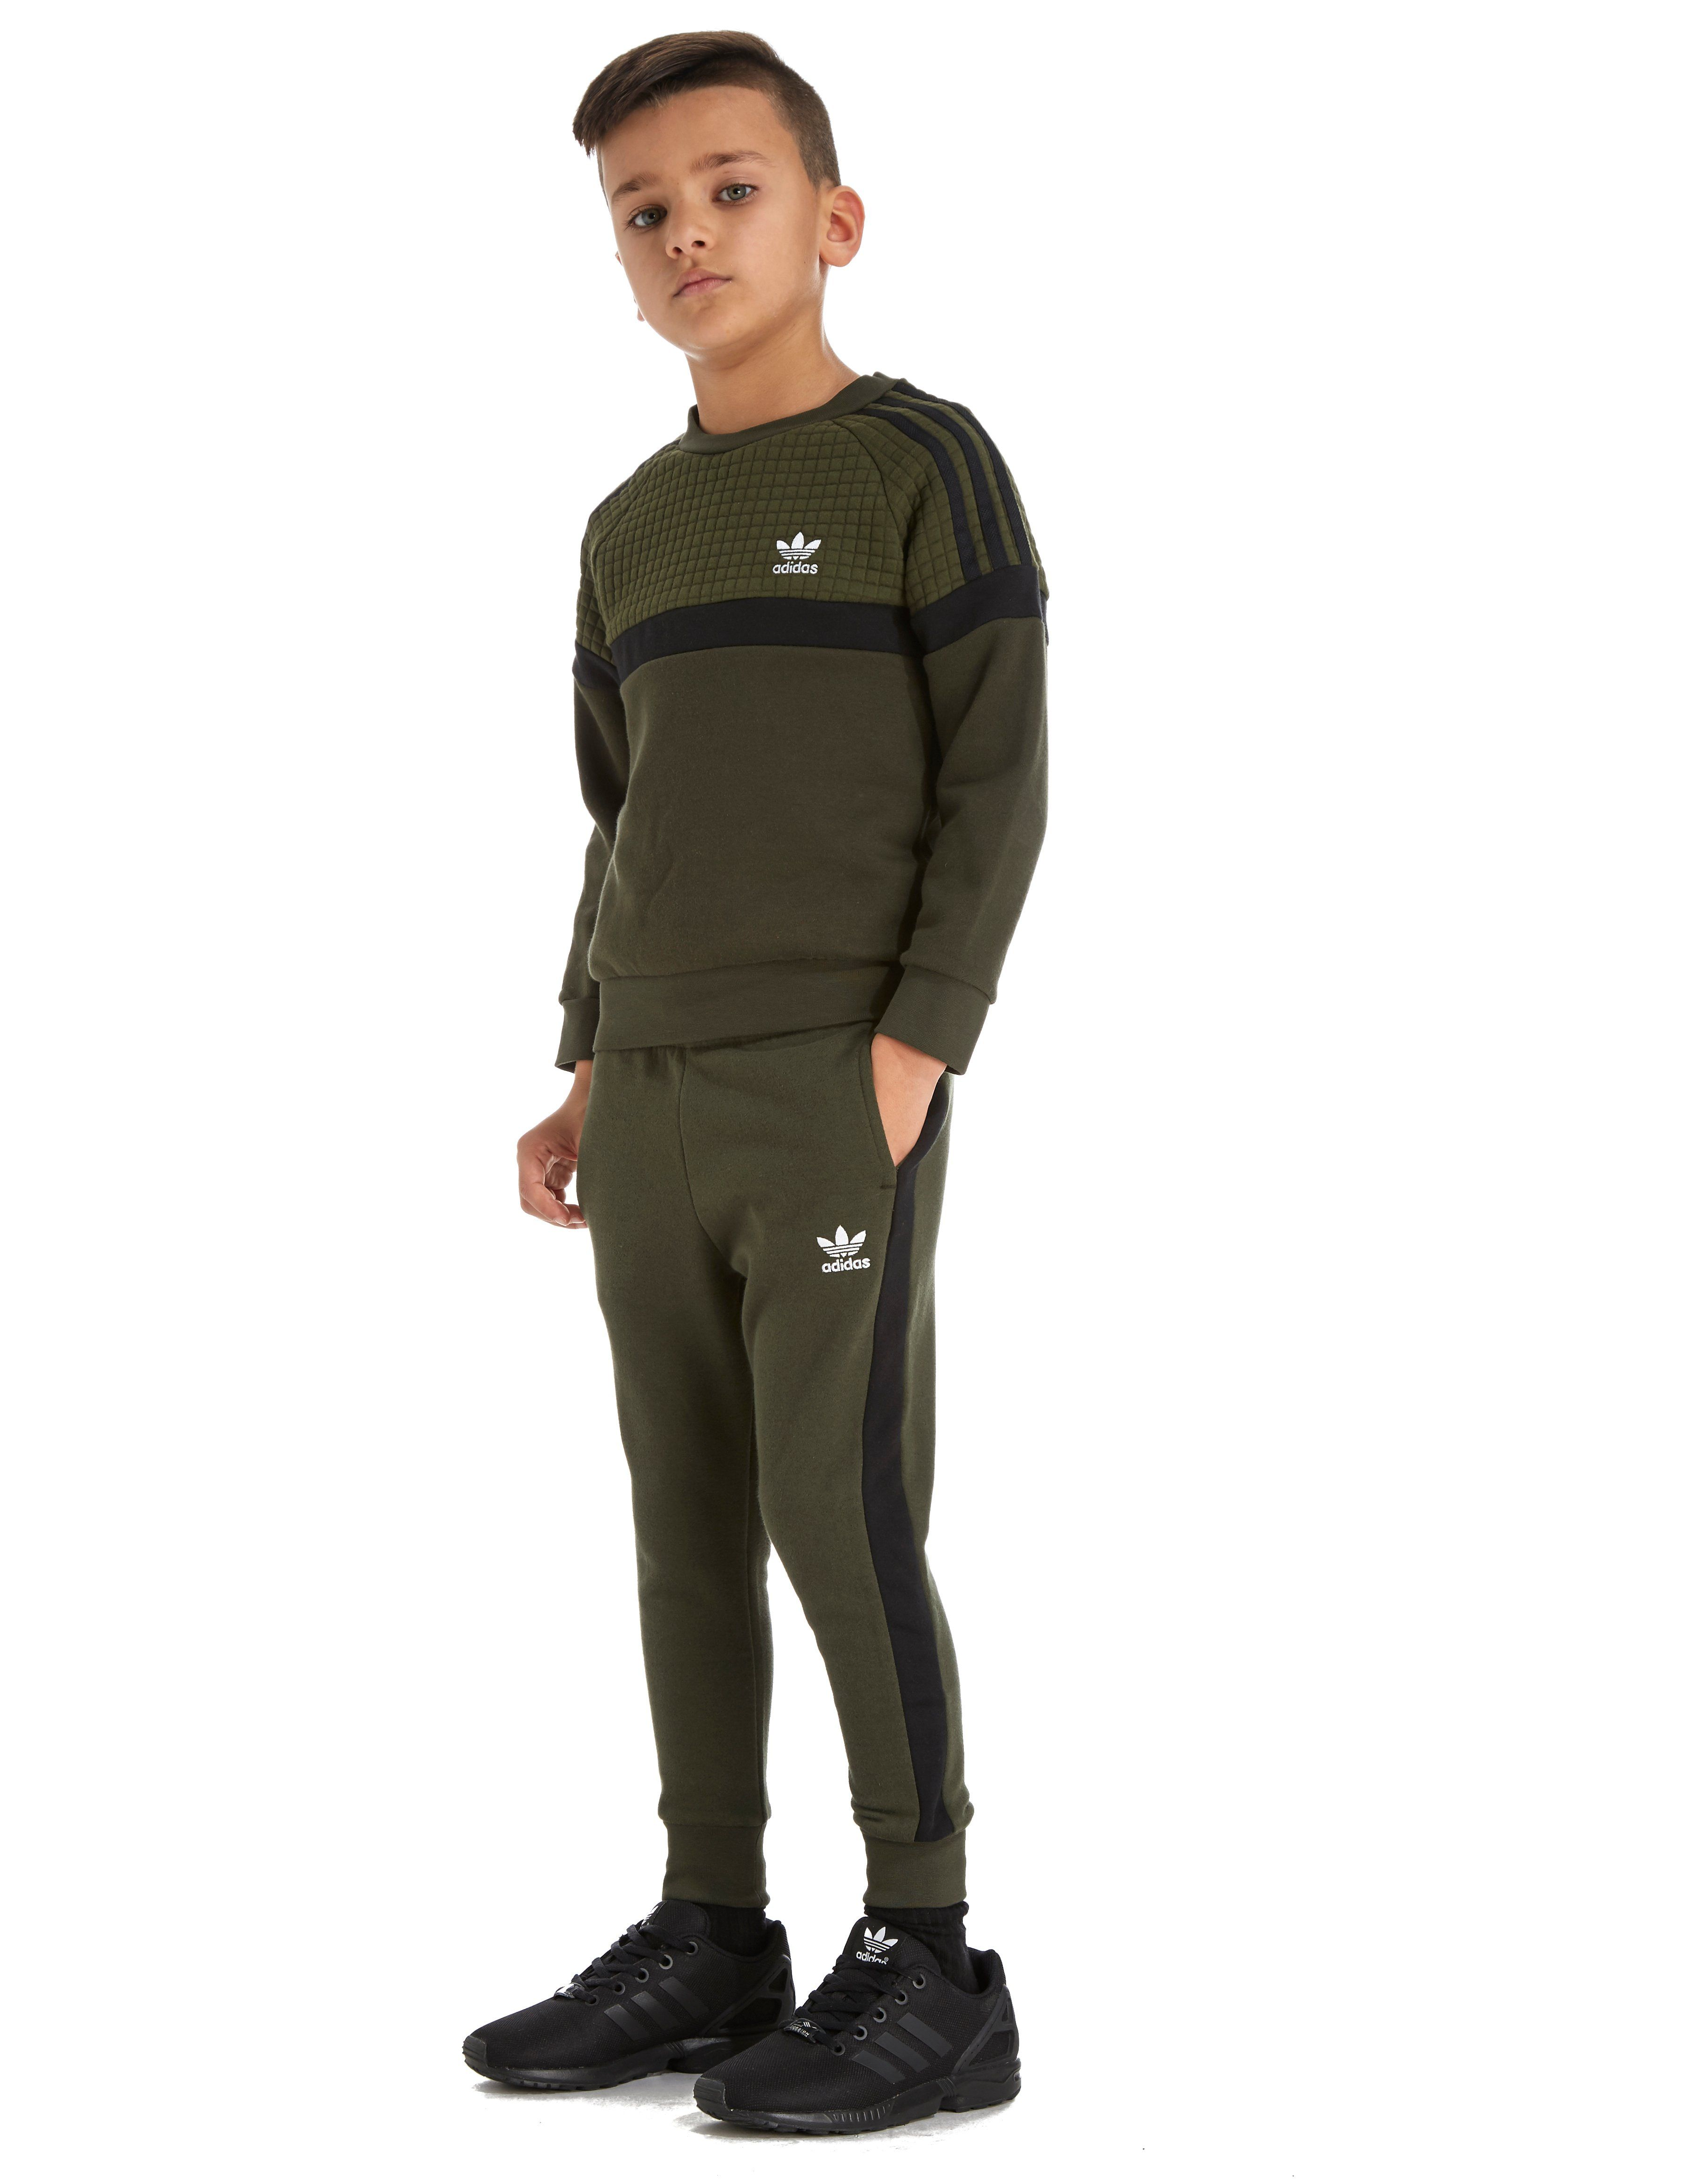 A2Z 4 Kids Kids Tracksuit Girls Boys Designer's Contrast Fleece Hooded adidas Originals Kids Superstar Track Suit. by adidas Originals. $ - $ $ 44 $ 94 99 Prime. FREE Shipping on eligible orders. Some sizes/colors are Prime eligible. out of 5 stars